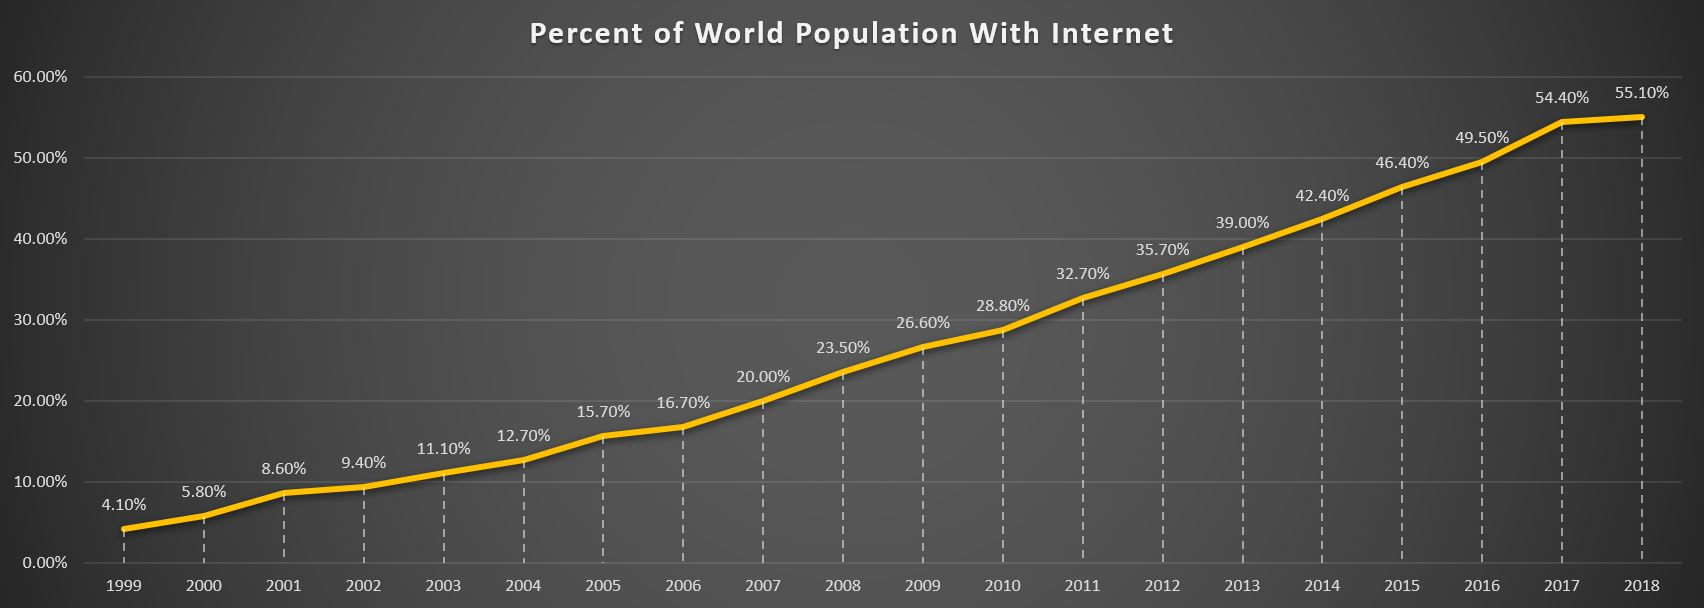 Figure 1. Growth of worldwide internet access from 1999 to 2018  [1]